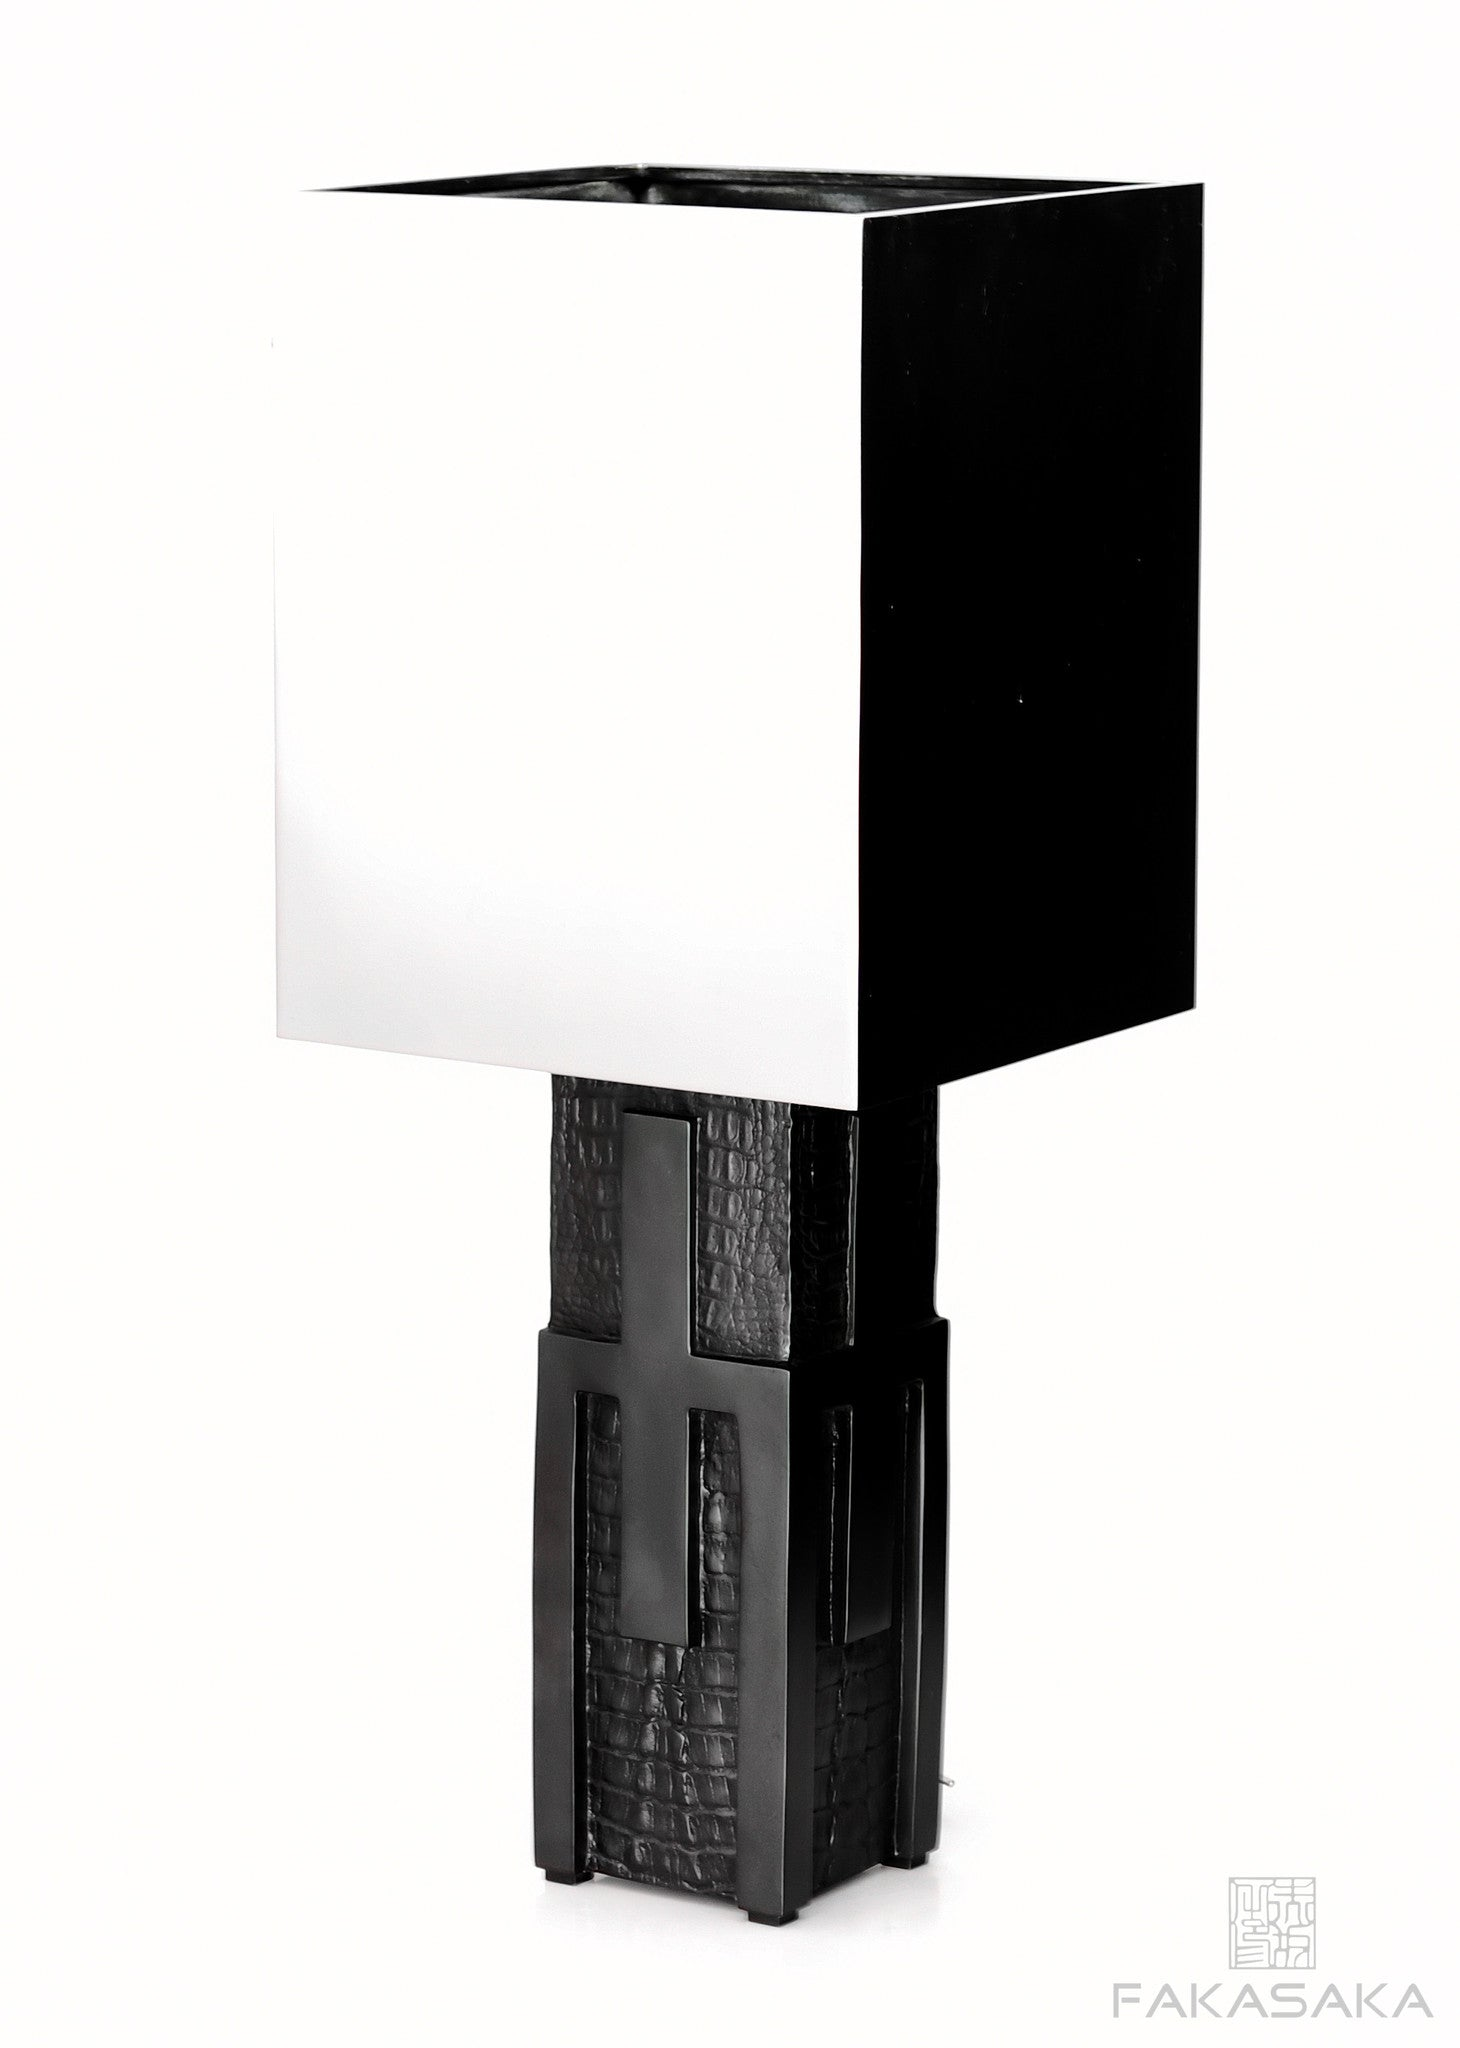 MARIAE 1 TABLE LAMP<br><br>DARK BRONZE<br>NICKEL SHADE